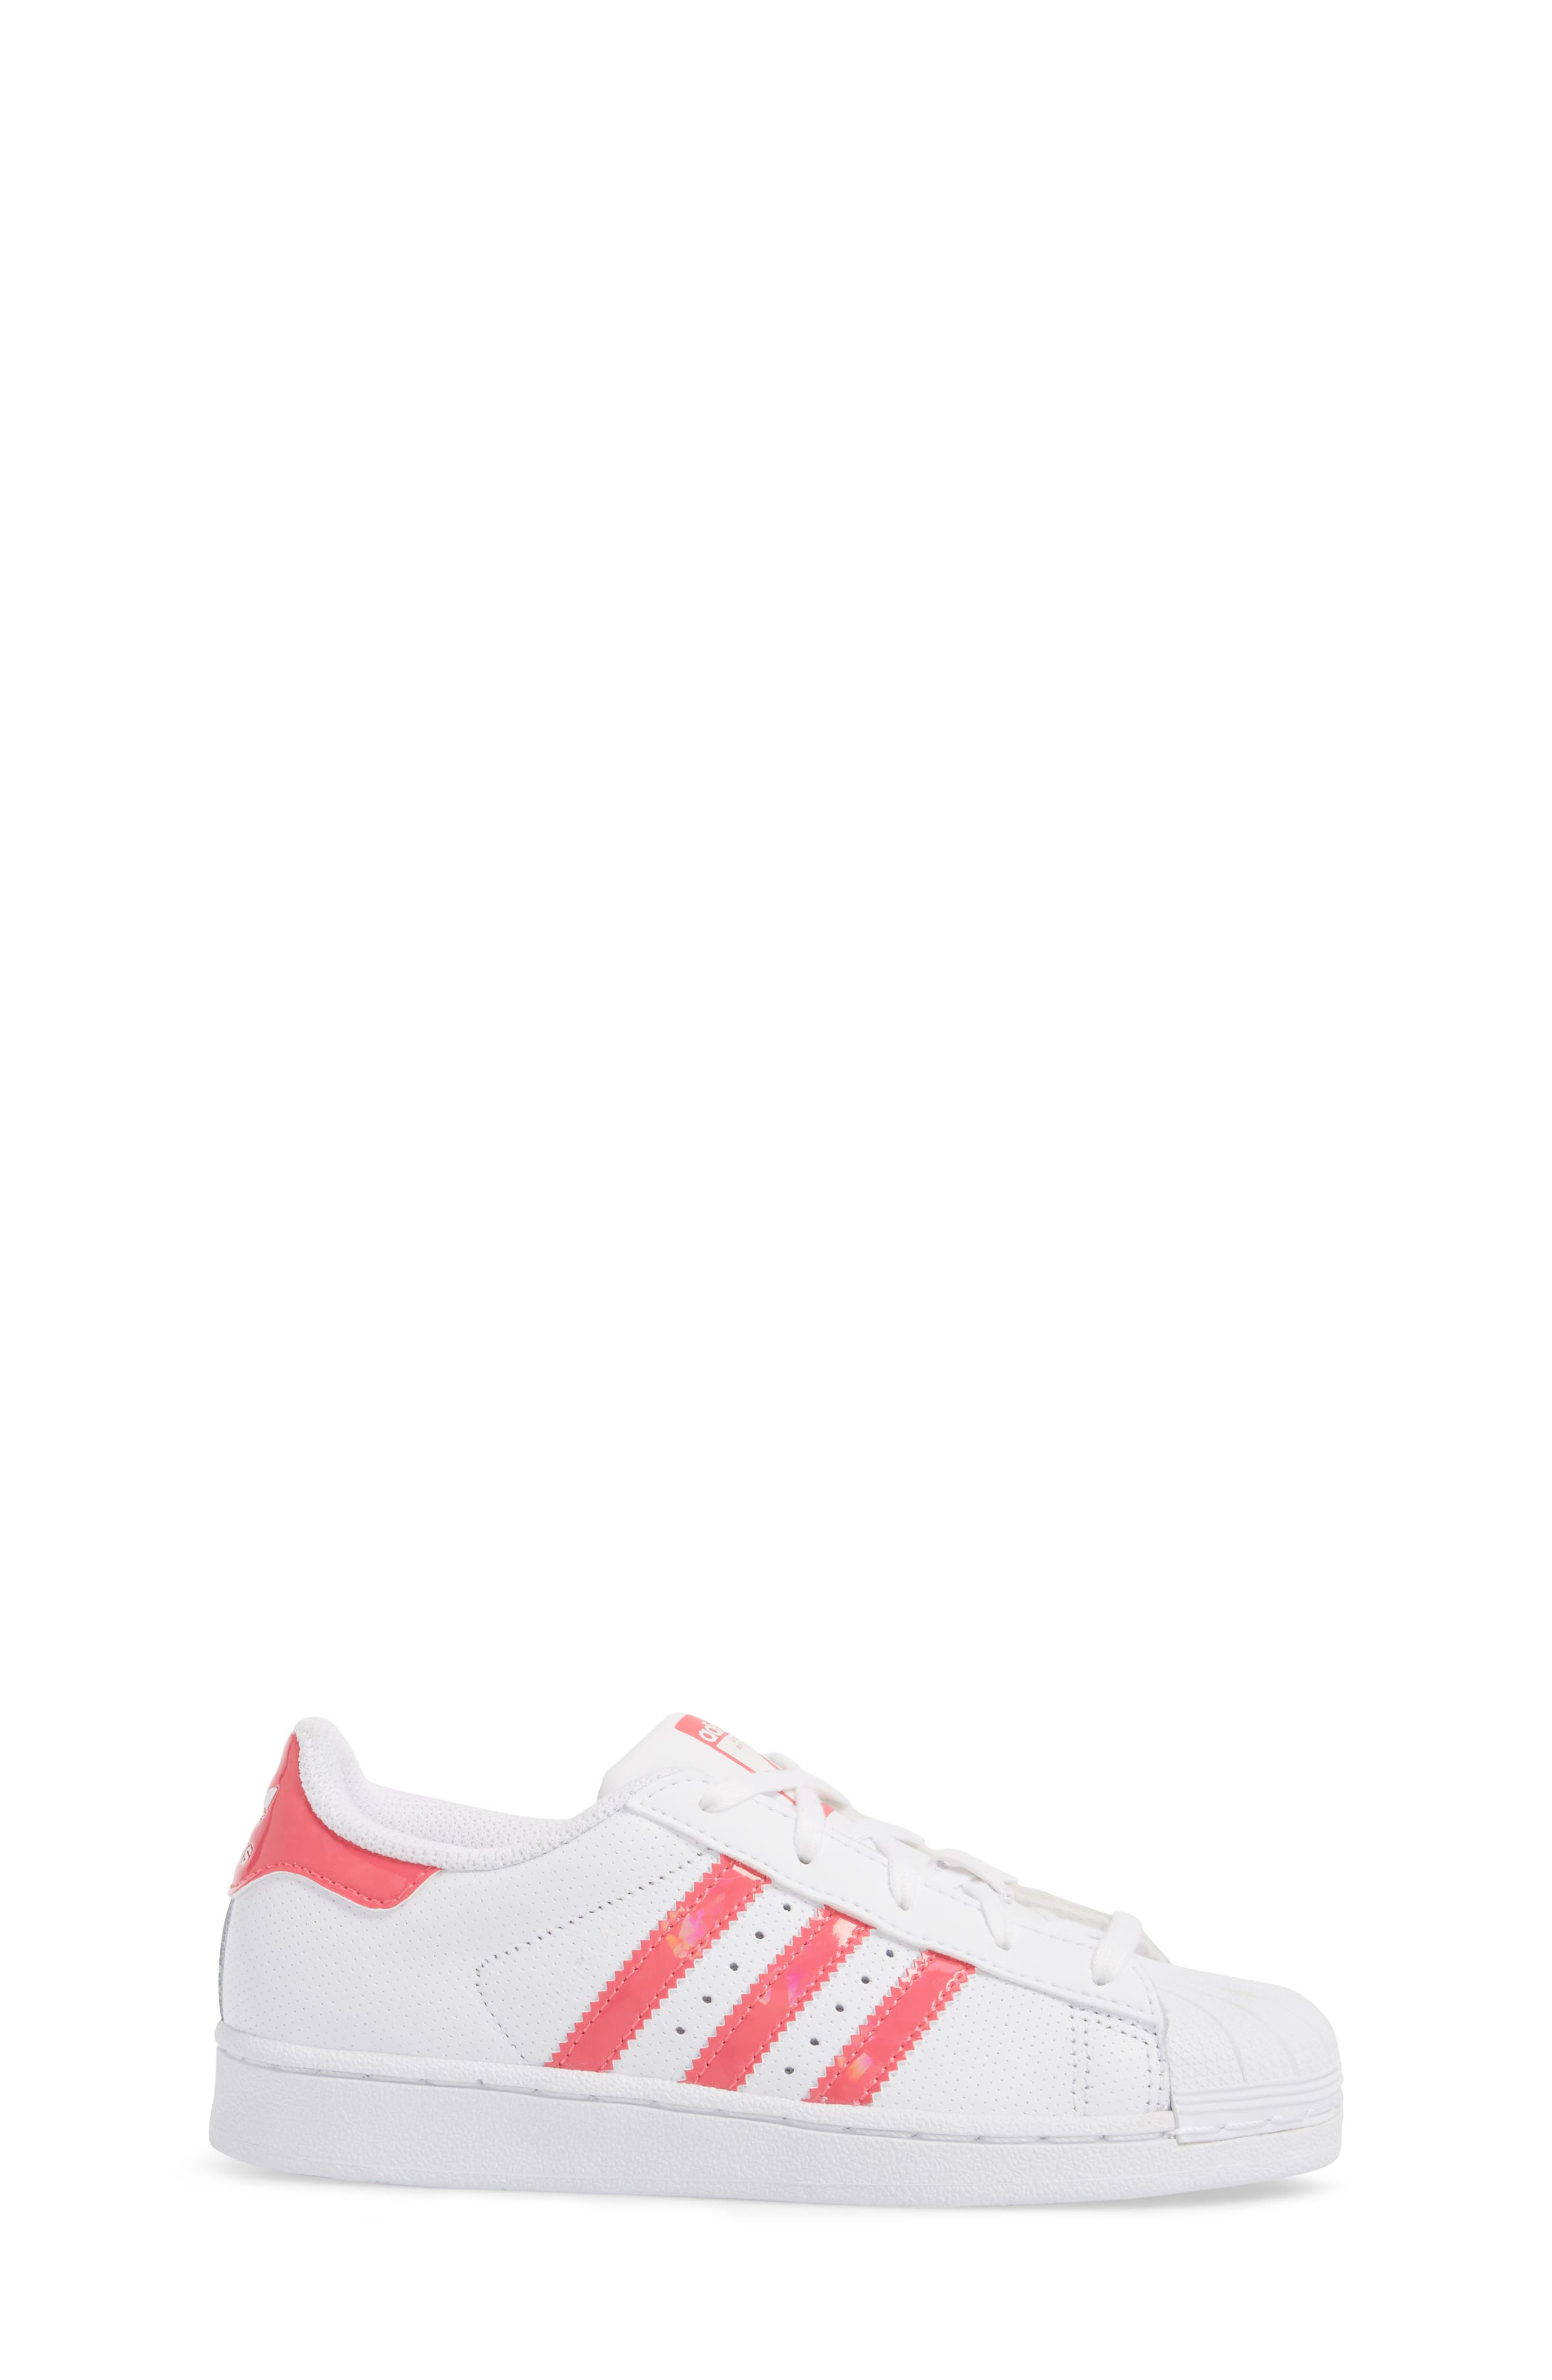 Superstar Perforated Low Top Sneaker,                             Alternate thumbnail 3, color,                             White / Real Pink / White